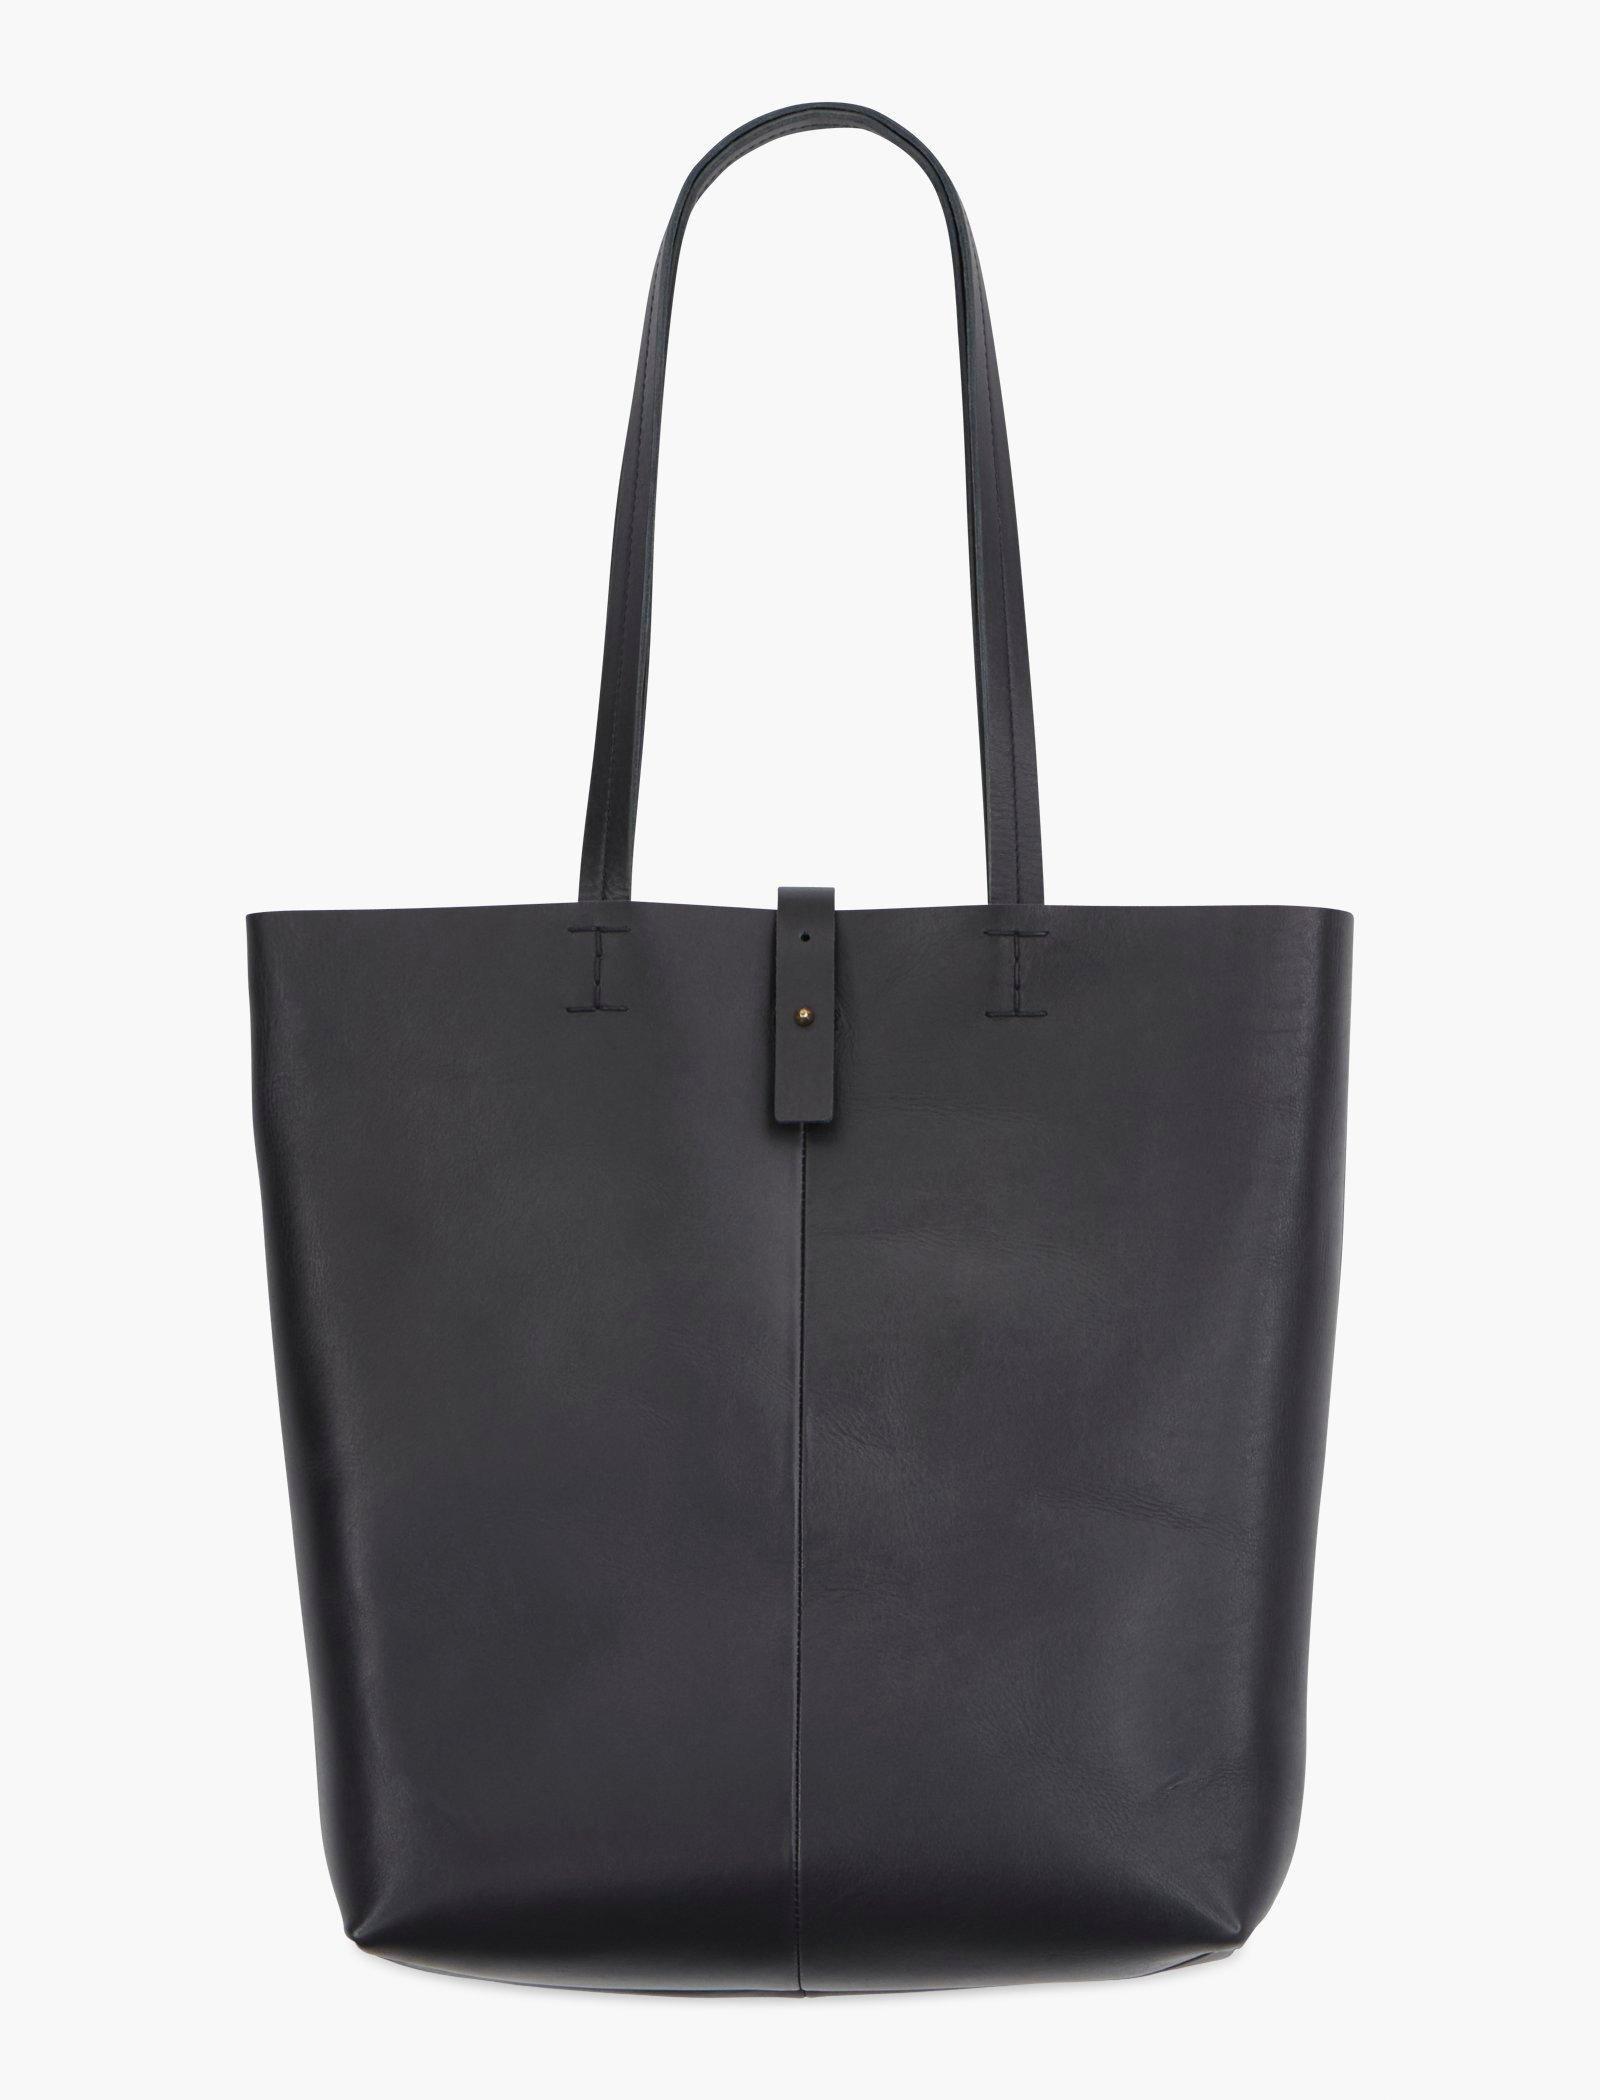 THE POINT LEATHER TOTE BAG, image 1